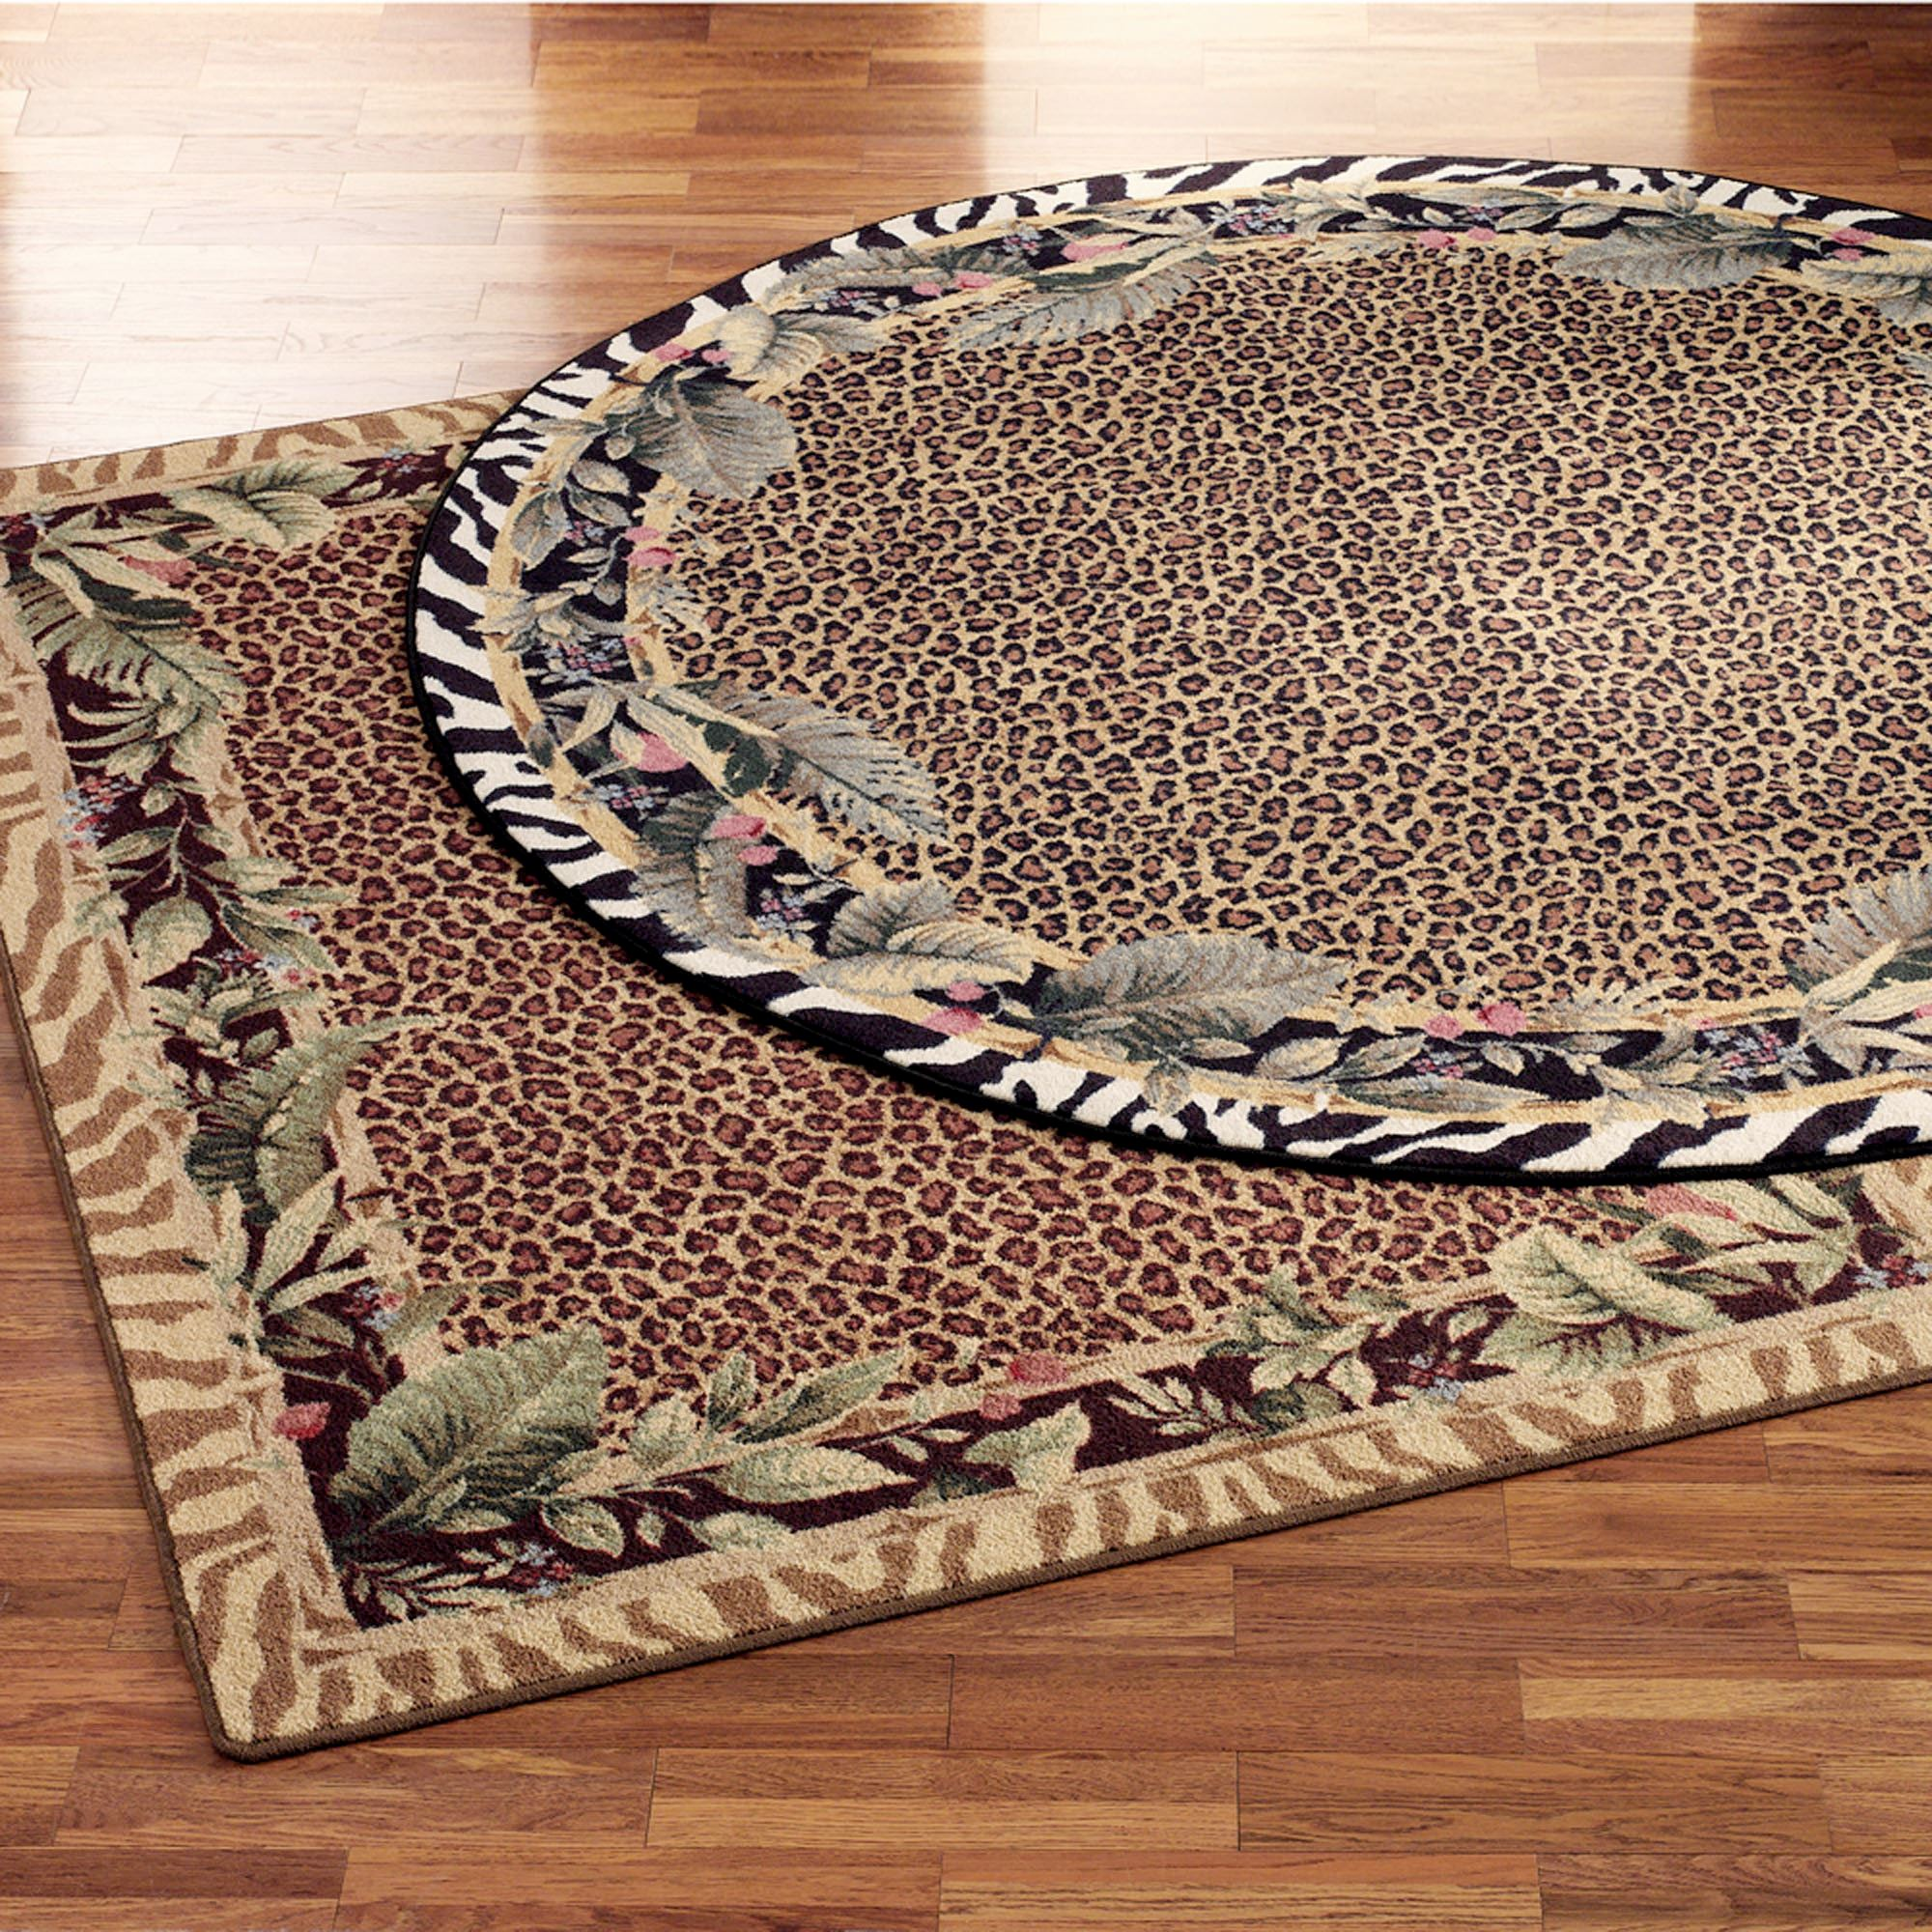 Jungle Safari Animal Print Area Rugs